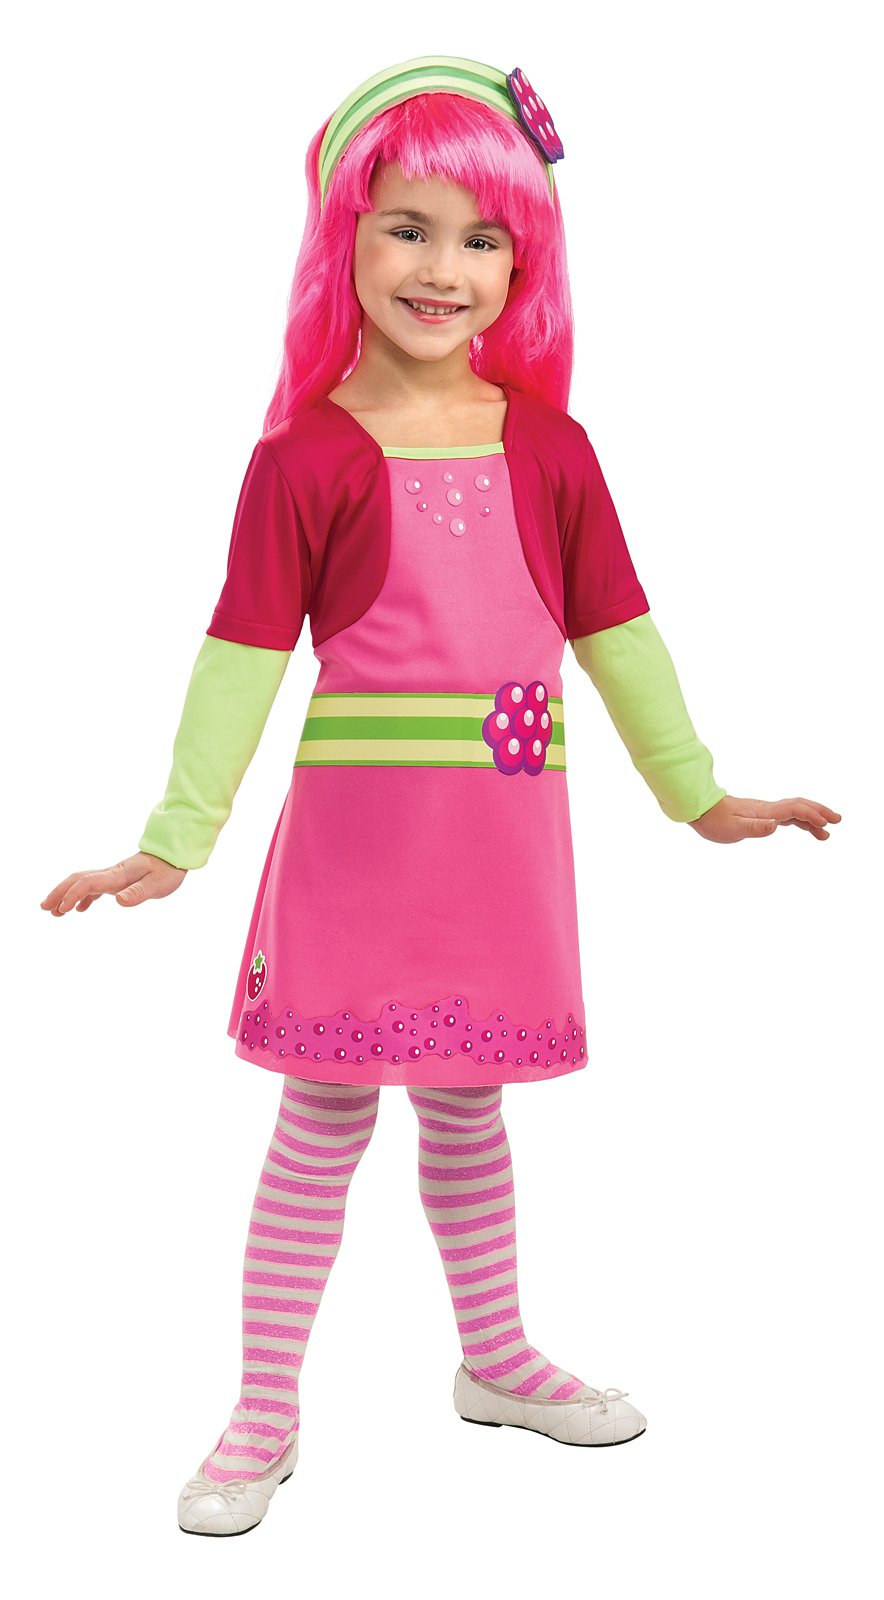 Strawberry Shortcake - Raspberry Torte Toddler / Child Costume